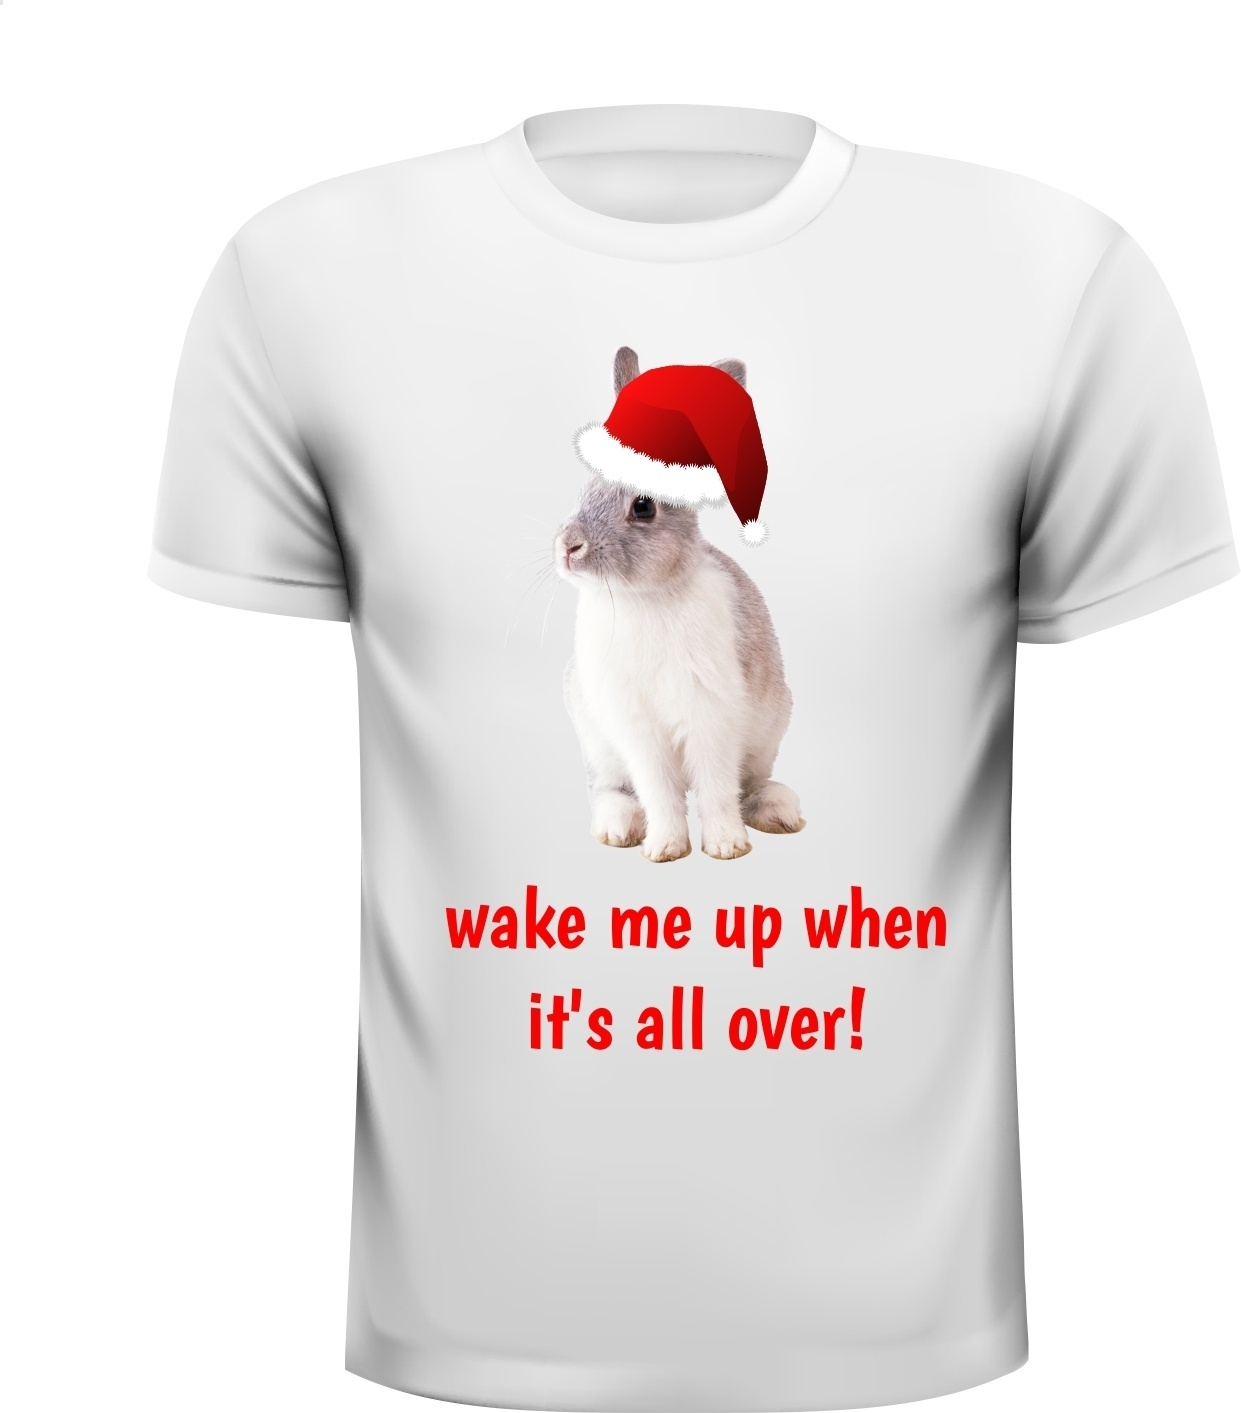 Konijnen  wake me up when  it's all over! T-shirt